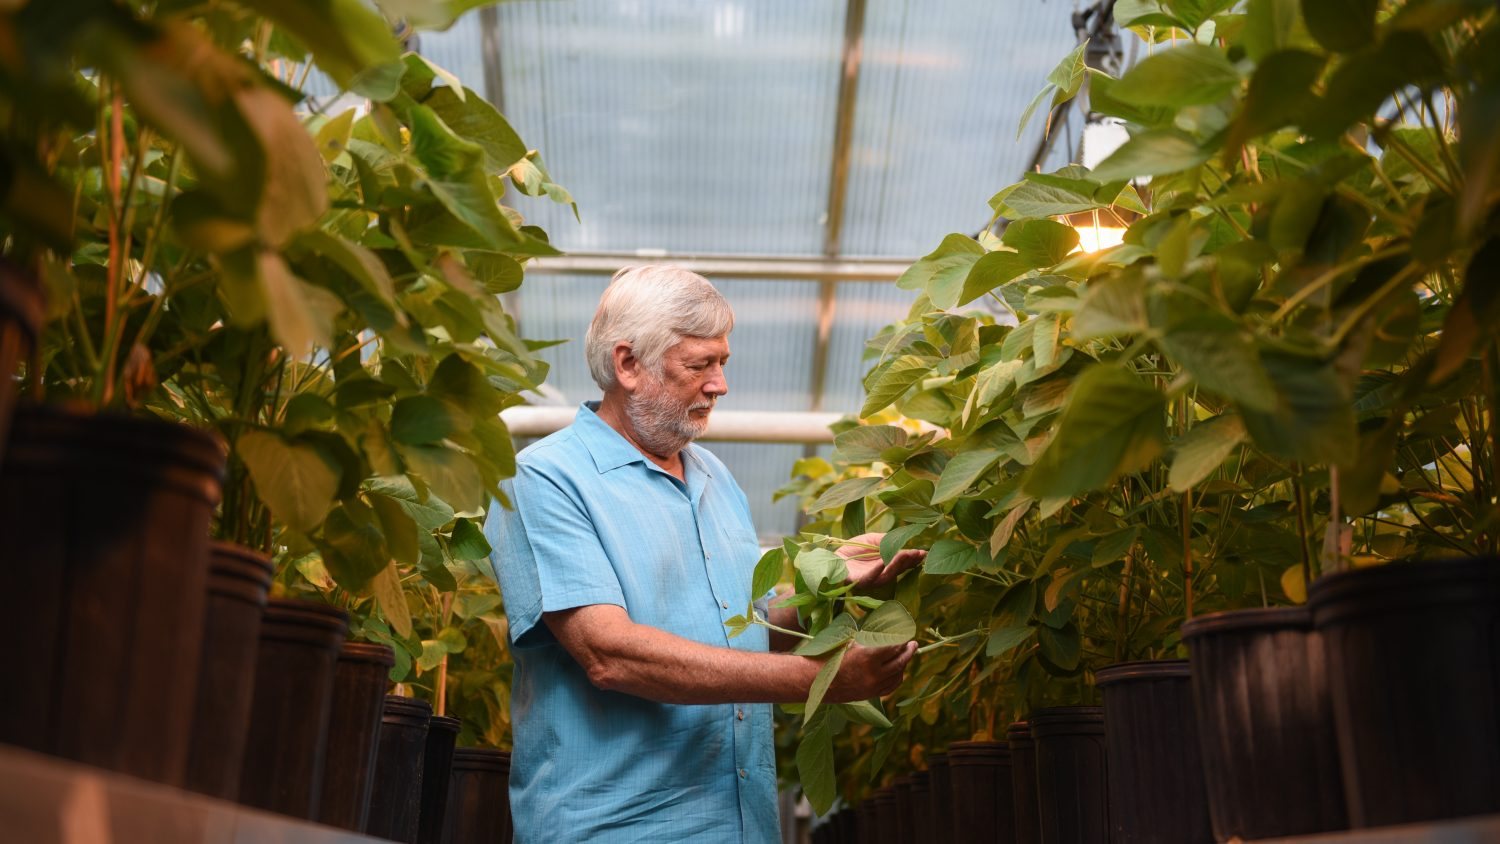 Scientist in a greenhouse with soybeans in a greenhouse